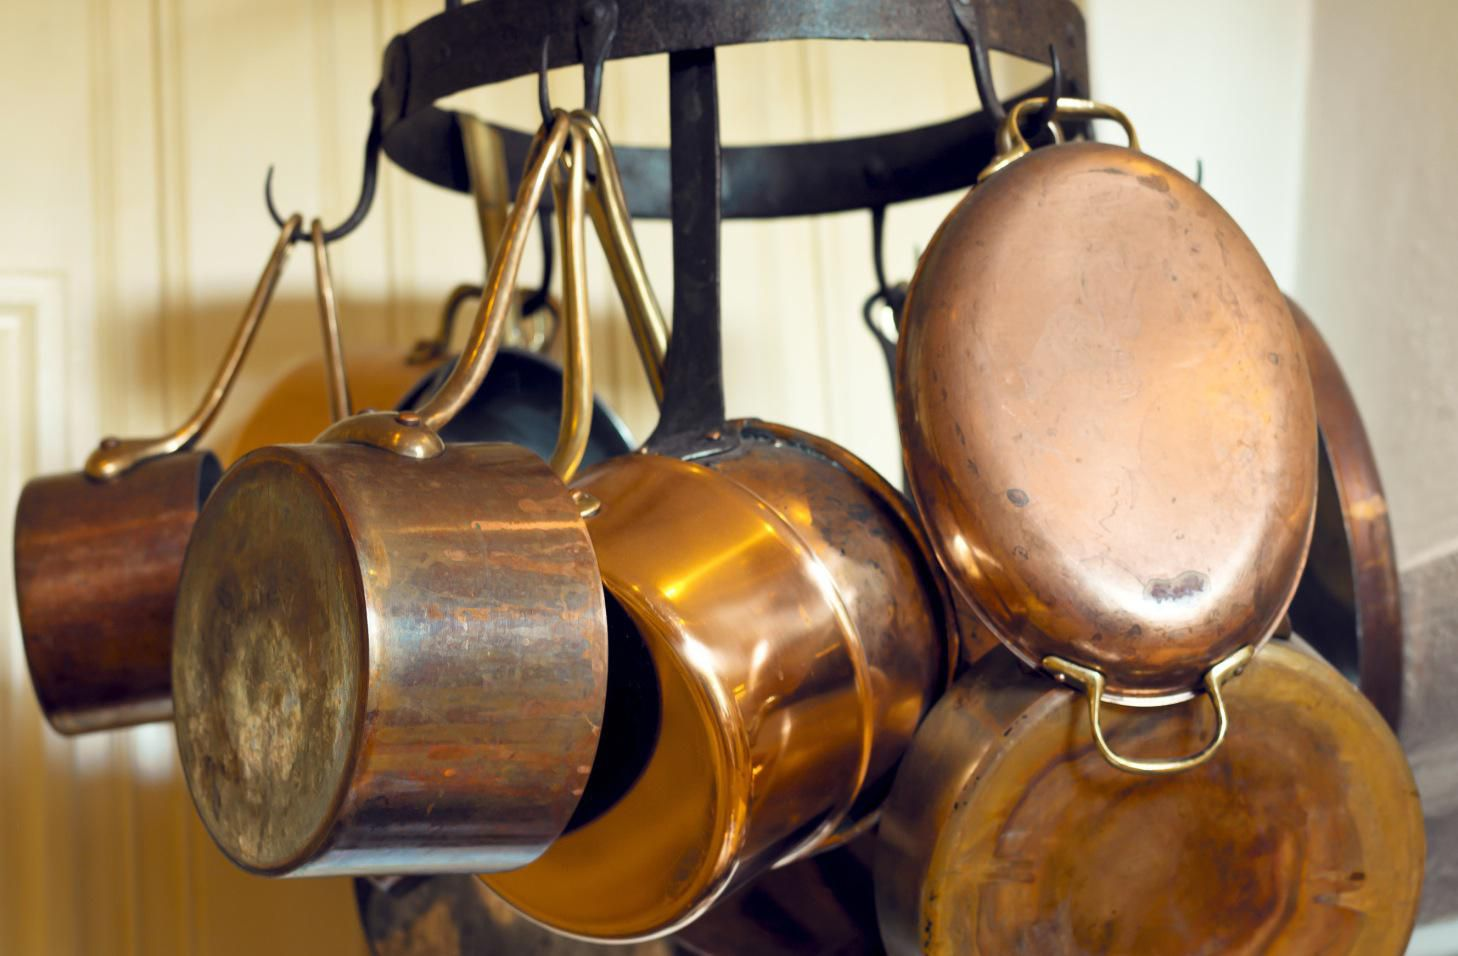 How To Clean And Polish Copper Without Chemicals